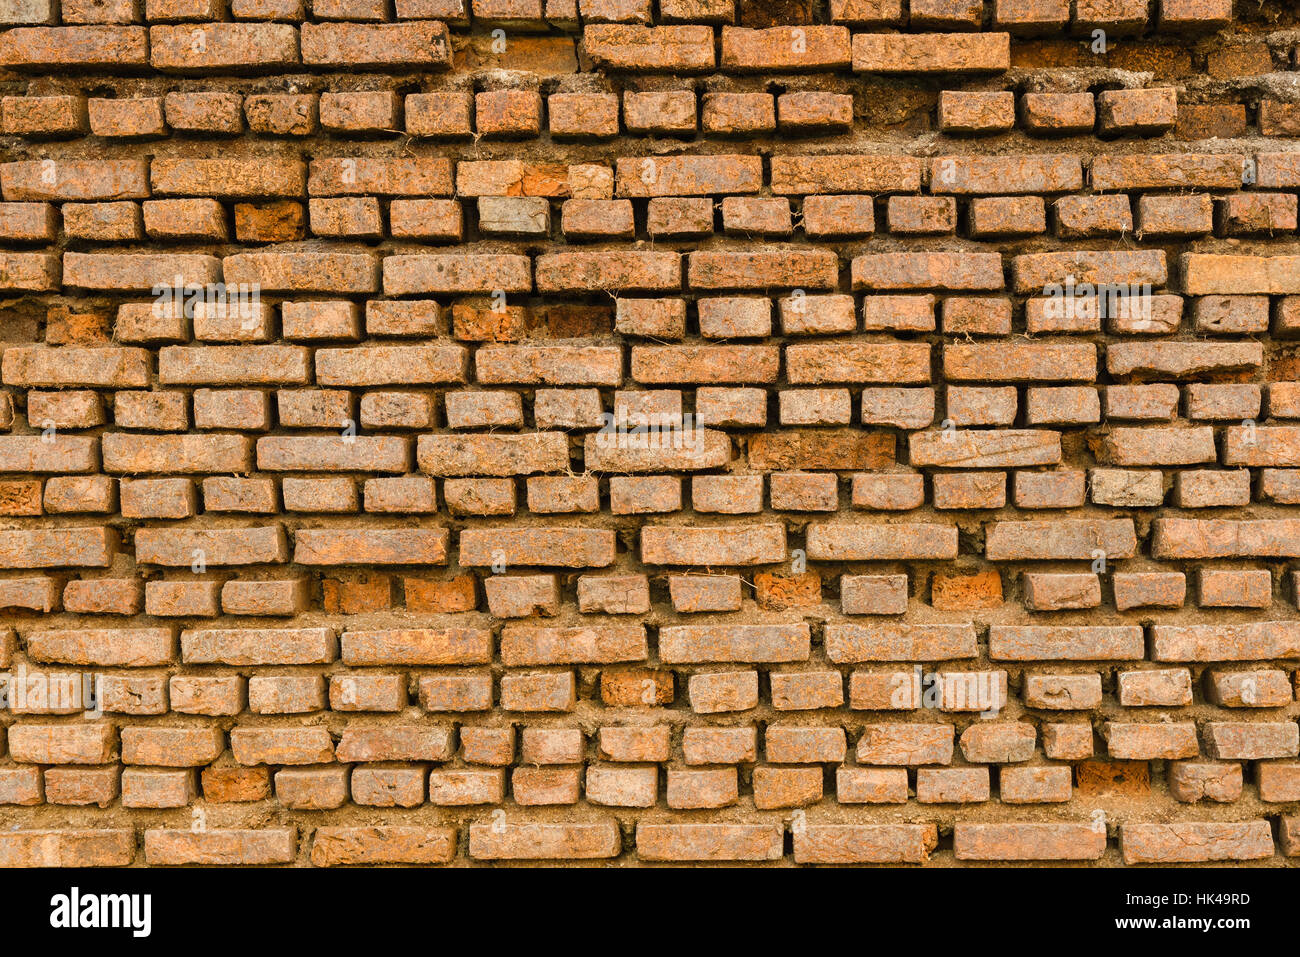 Old Ancient Vintage Grunge Dusty Orange Brick Wall With Some Cracked Bricks Texture Background - Stock Image